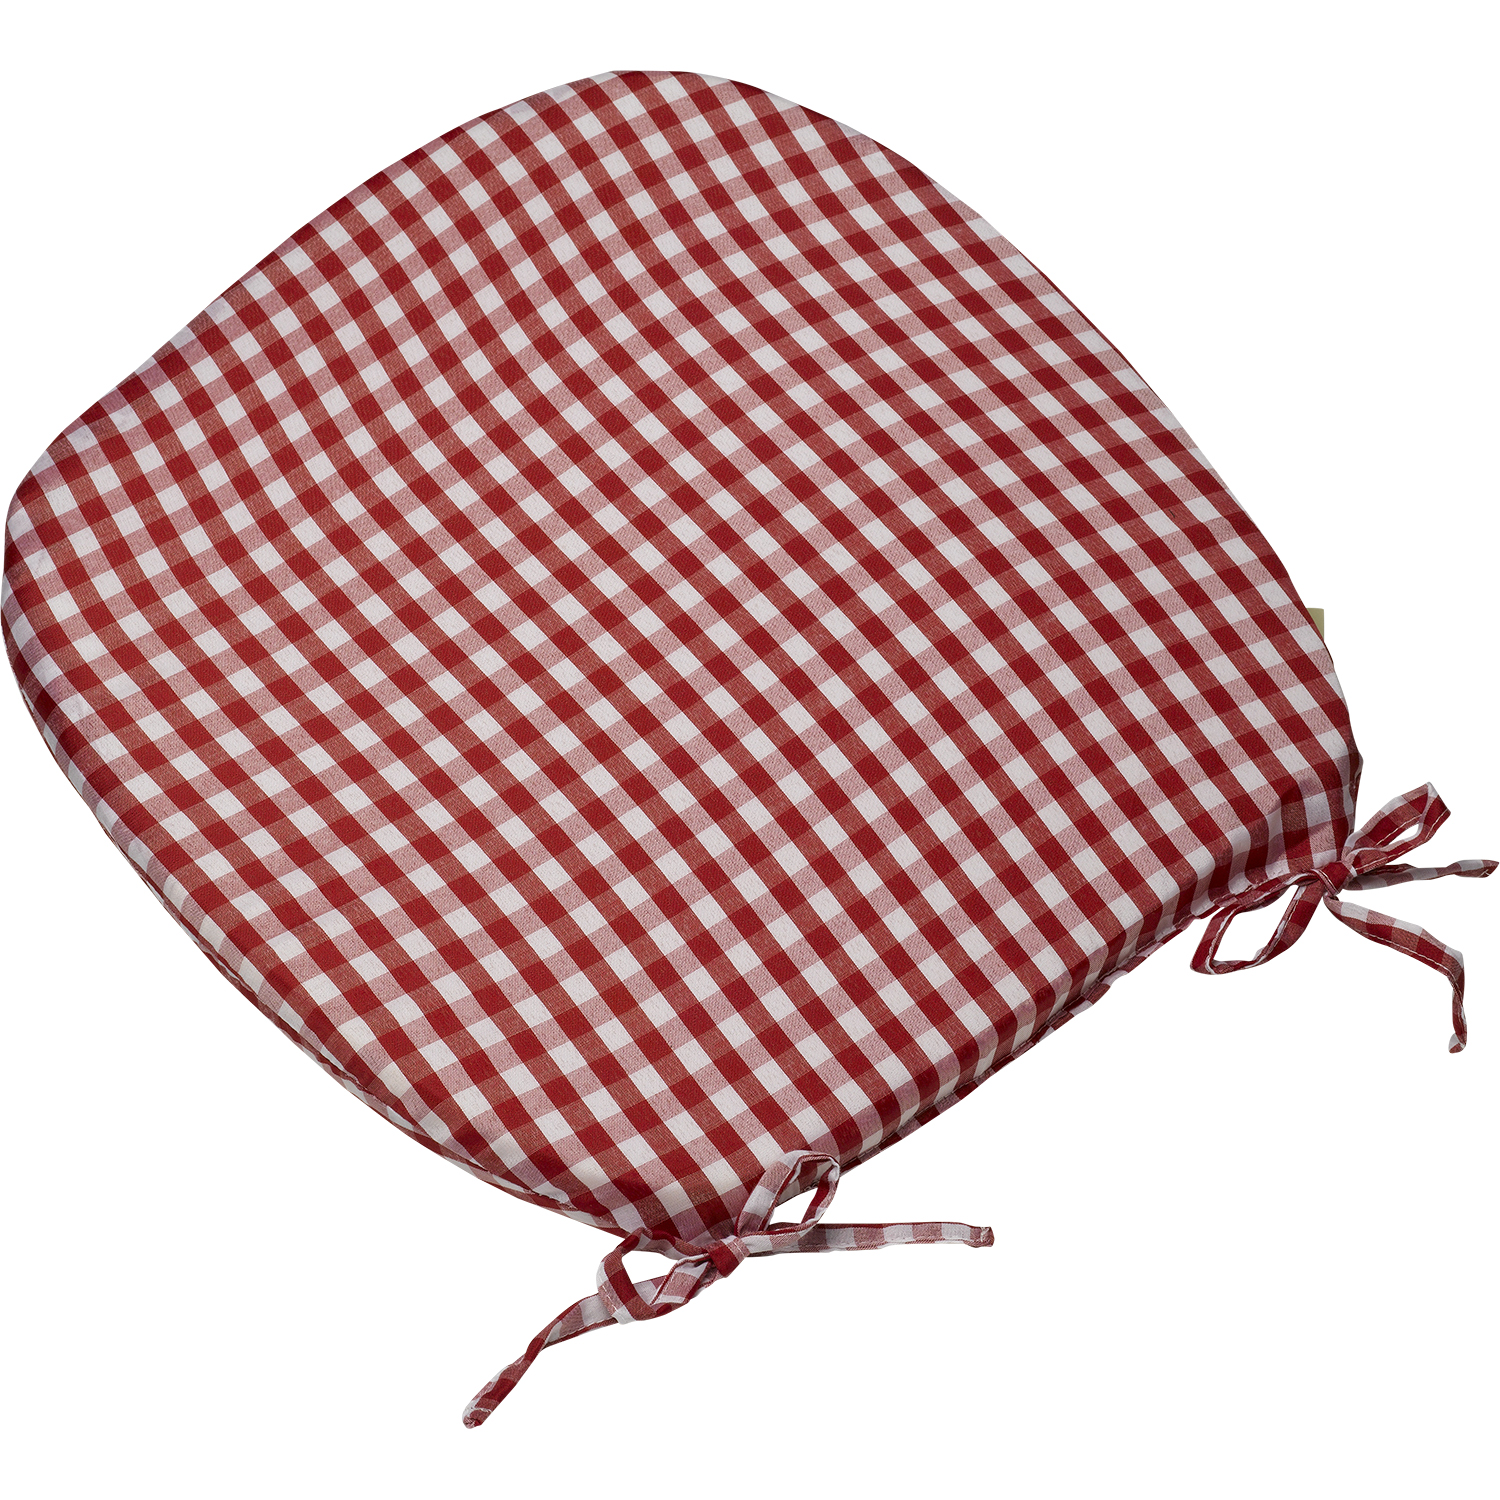 Tie On Rounded Gingham Chair Seat Pad Cushion Outdoor Garden Dining Checked  Picture 2 Of